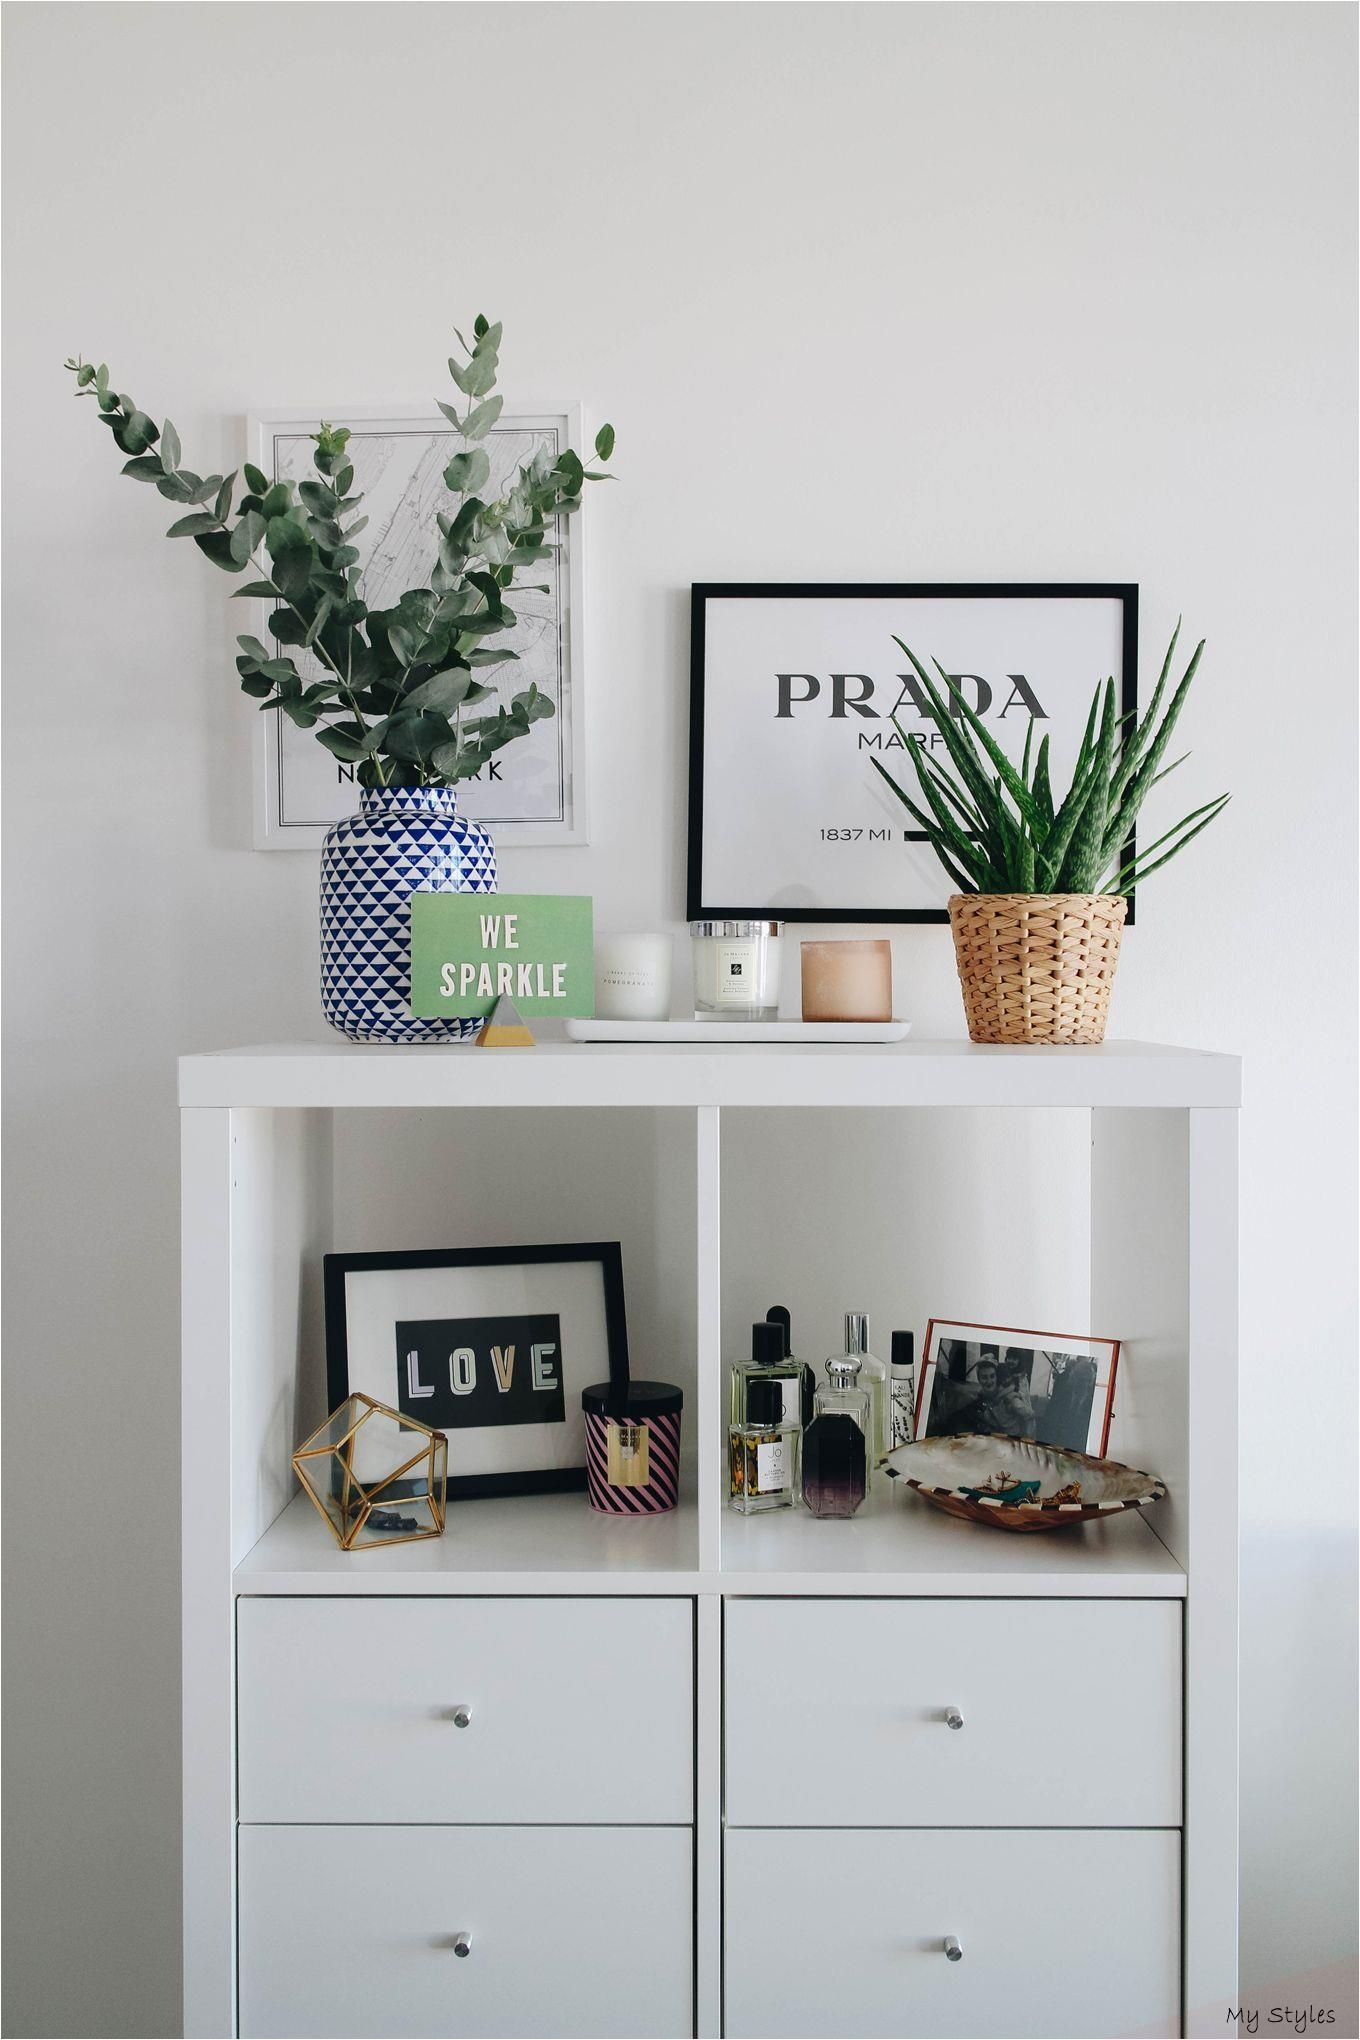 Oct 2 2018 I Furnished My First Apartment On A Budget And These Are 3 Of The Best Ikea Products I Purchase En 2020 Deco Maison Interieur Meuble A Cases Deco Maison